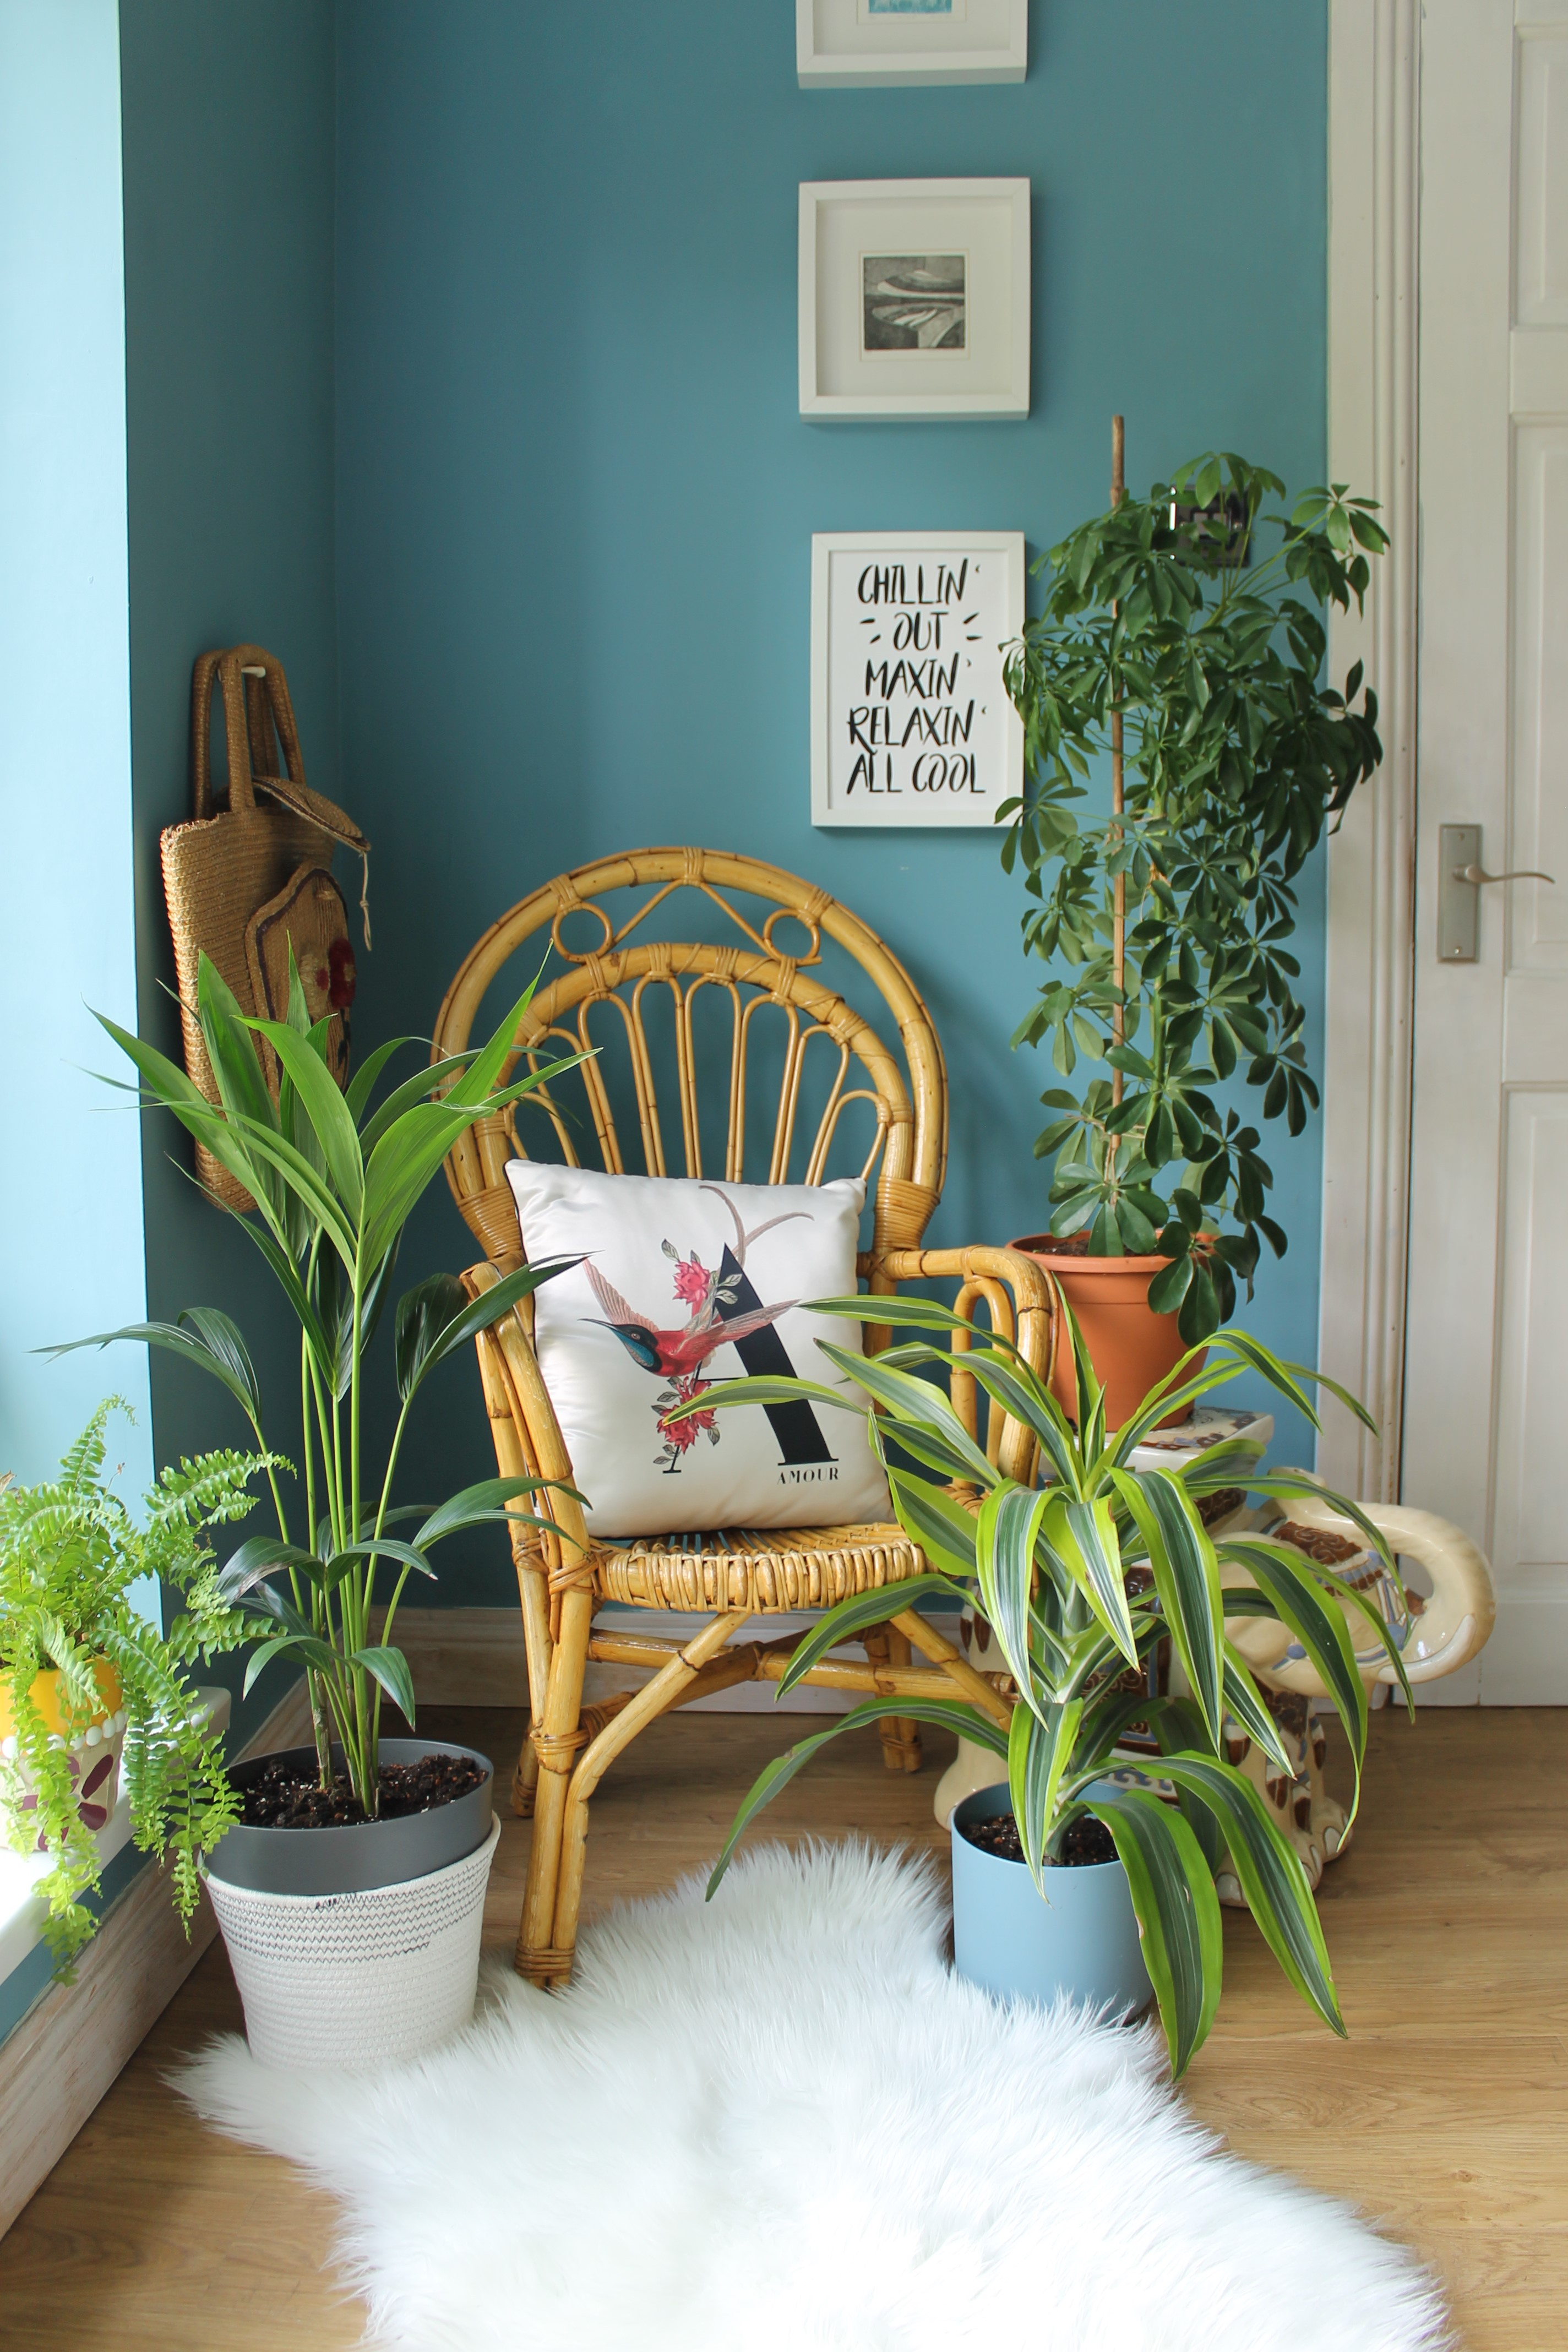 5 reasons to bring houseplants home